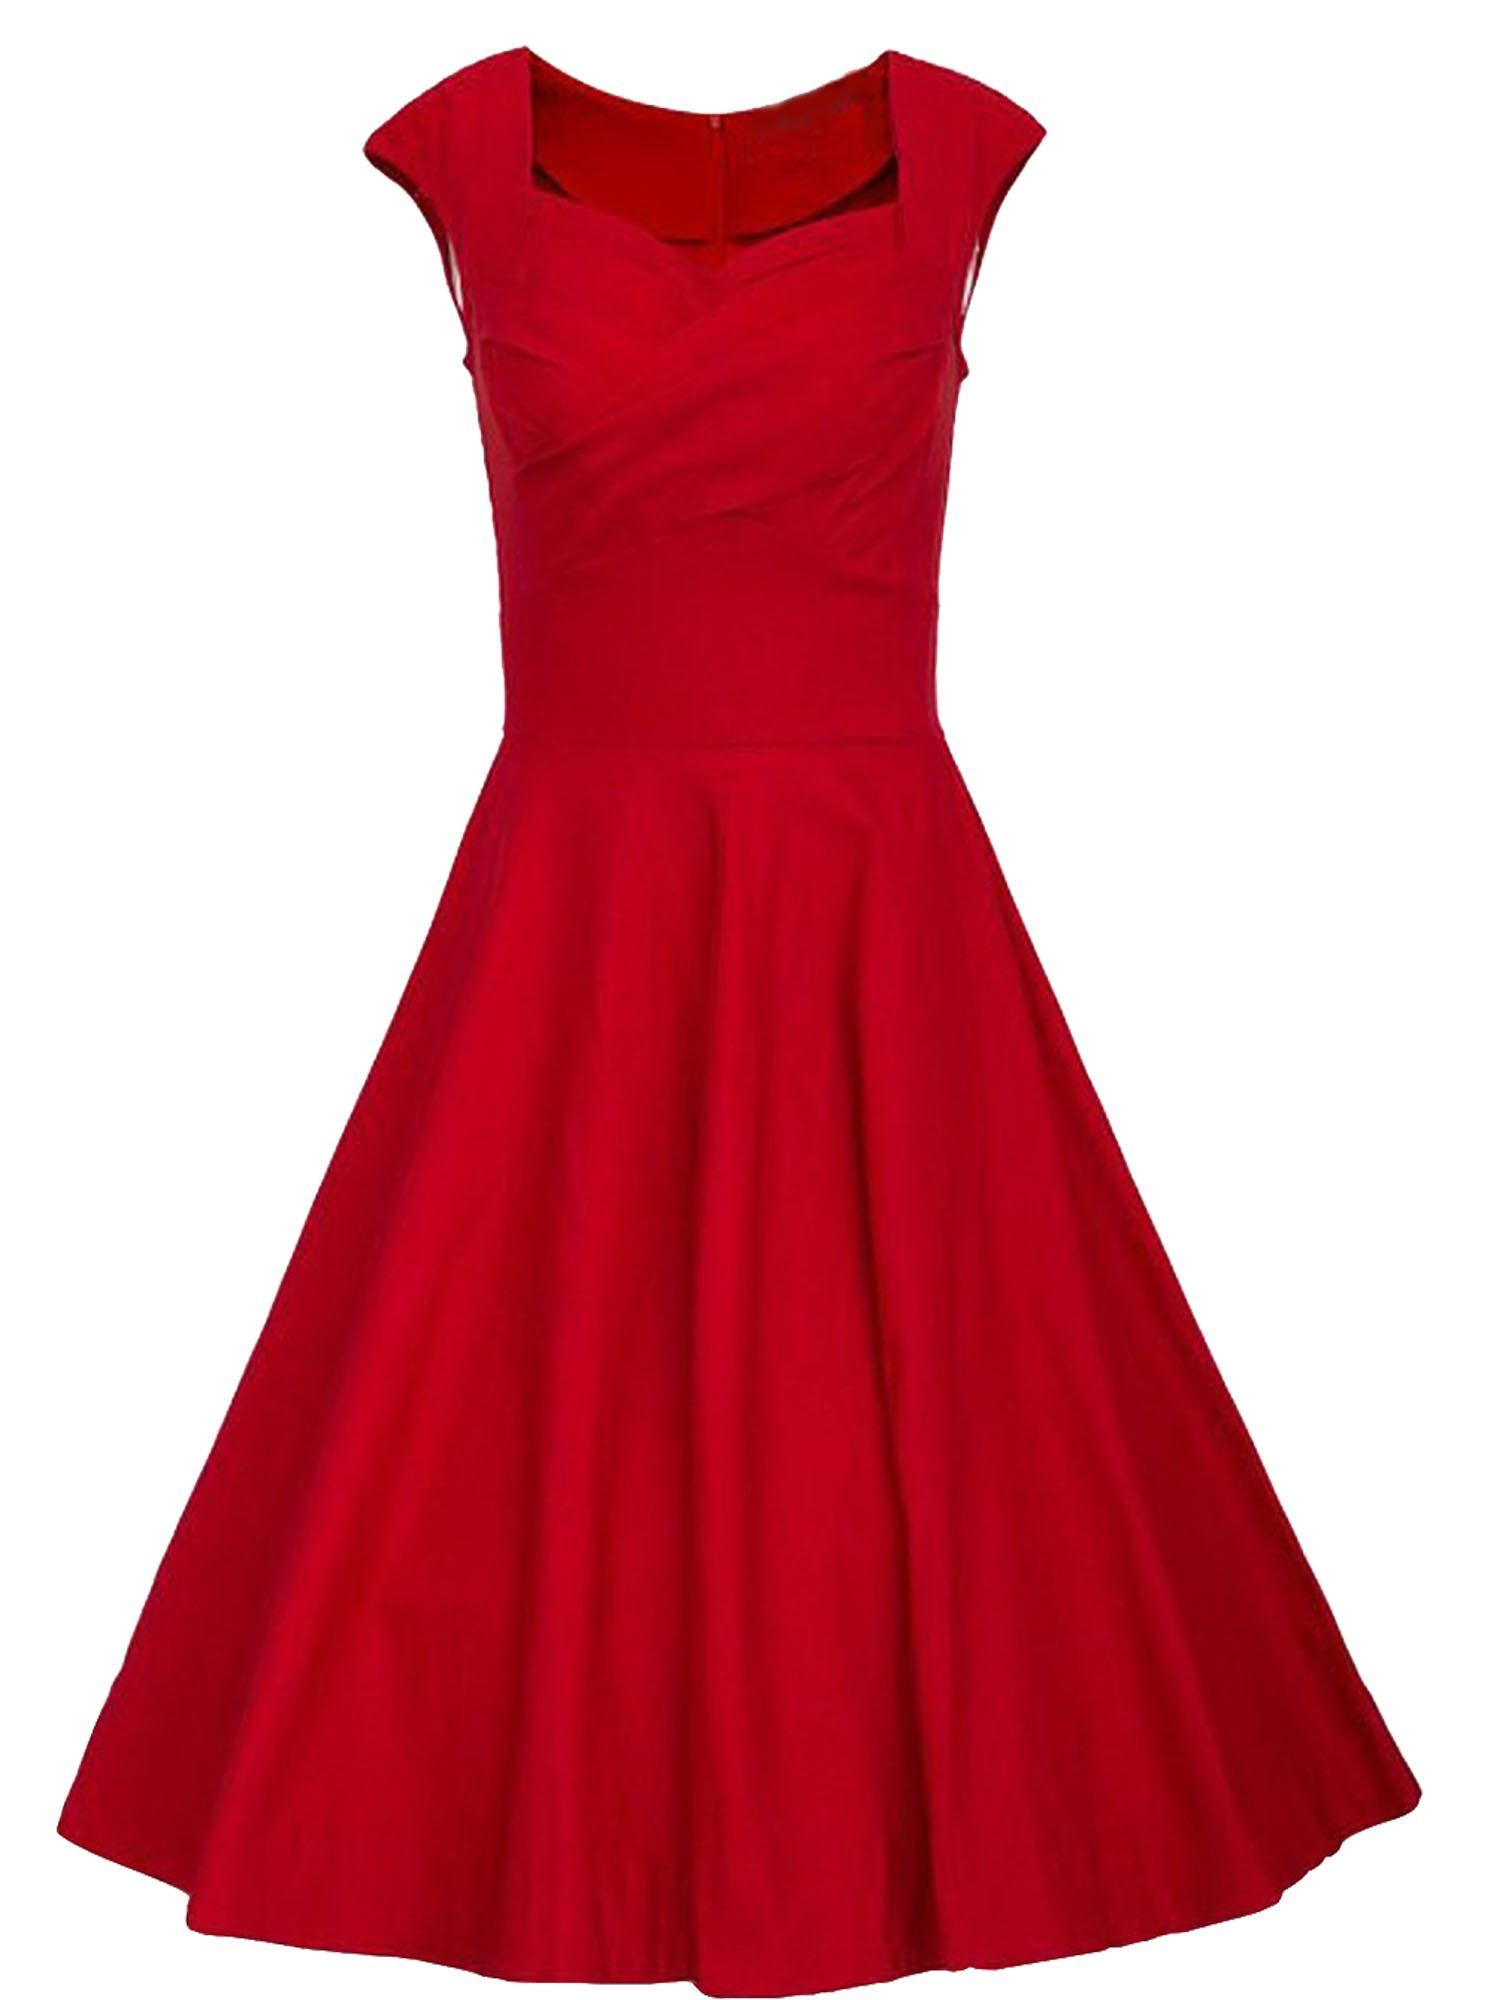 Luouse \'Lana\' Vintage 1950\'s Inspired Rockabilly Swing Dress at ...